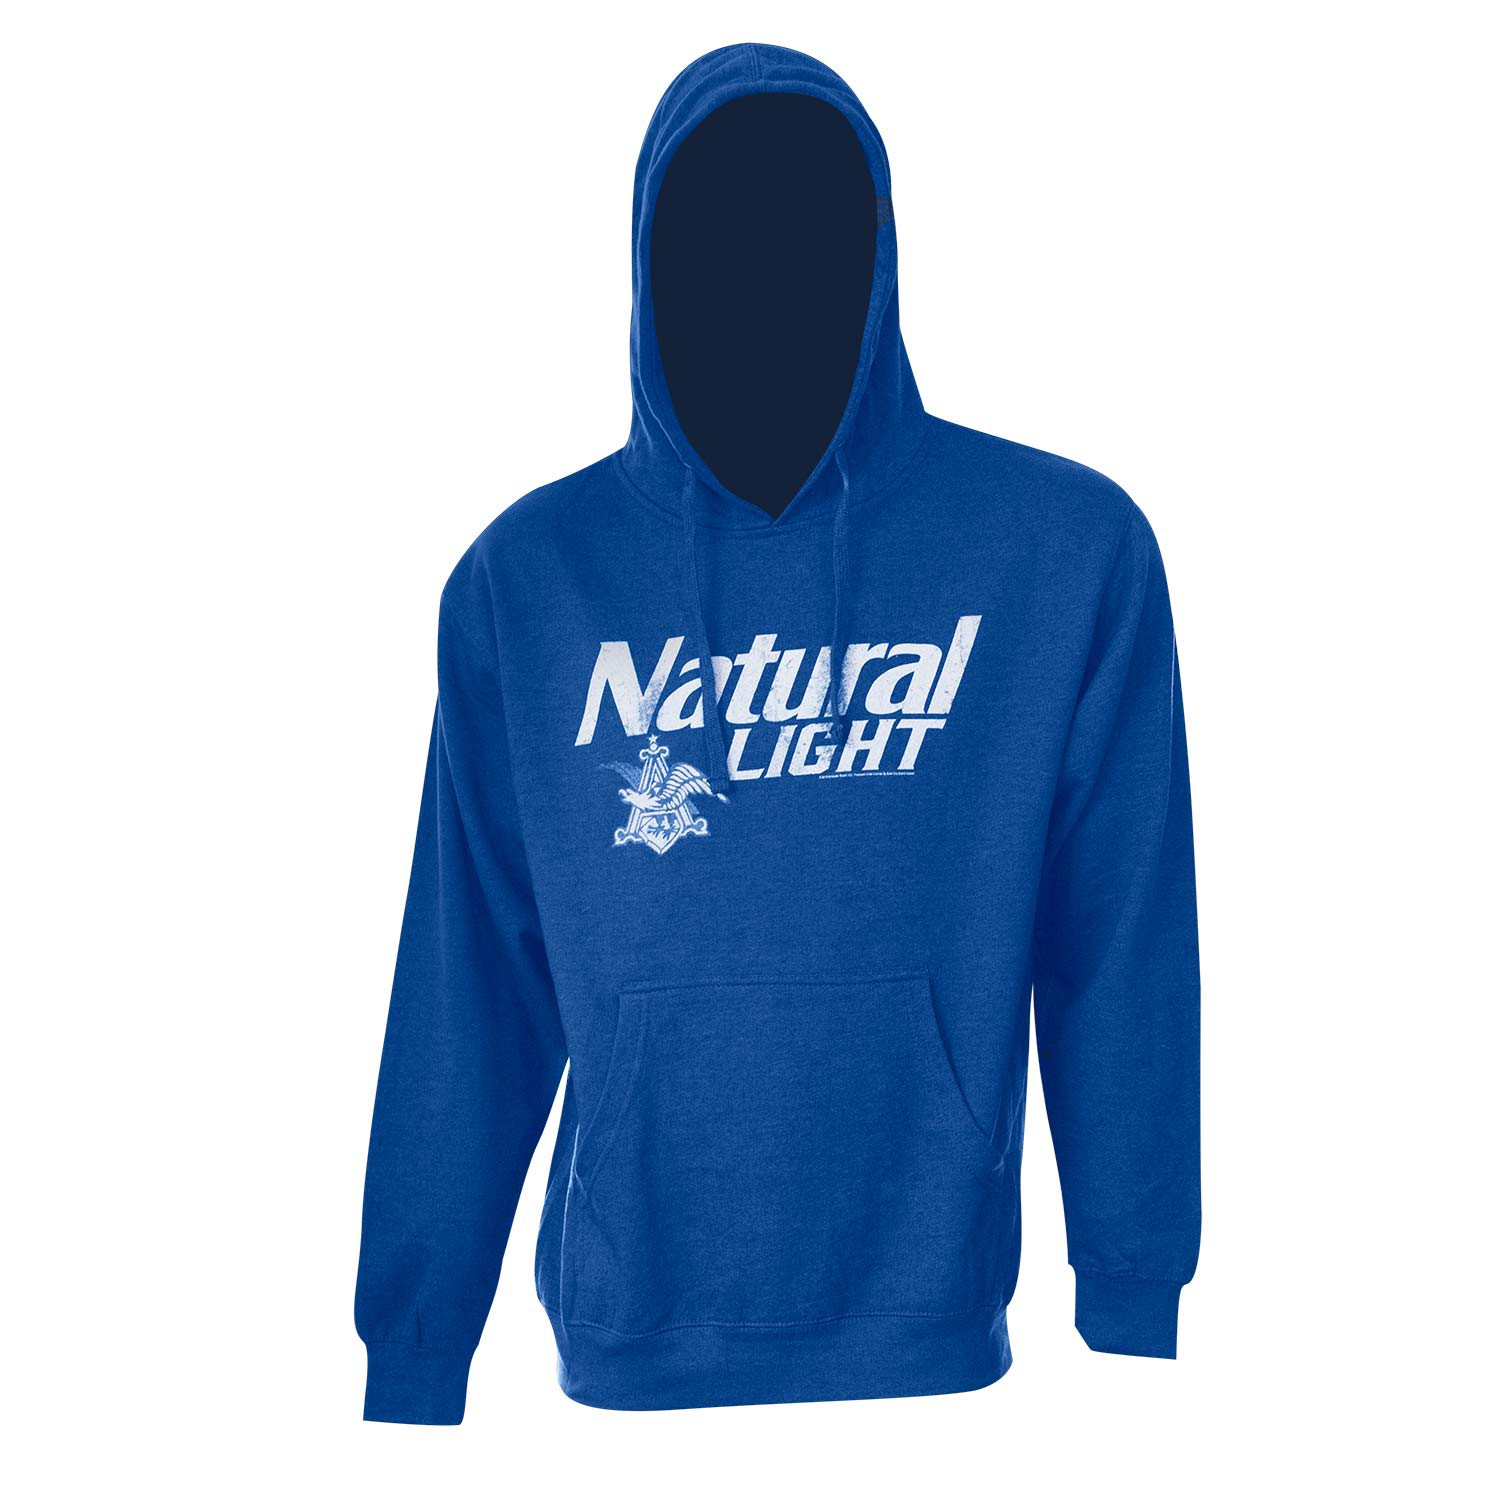 Natural Light Beer Logo Men's Royal Blue Hoodie